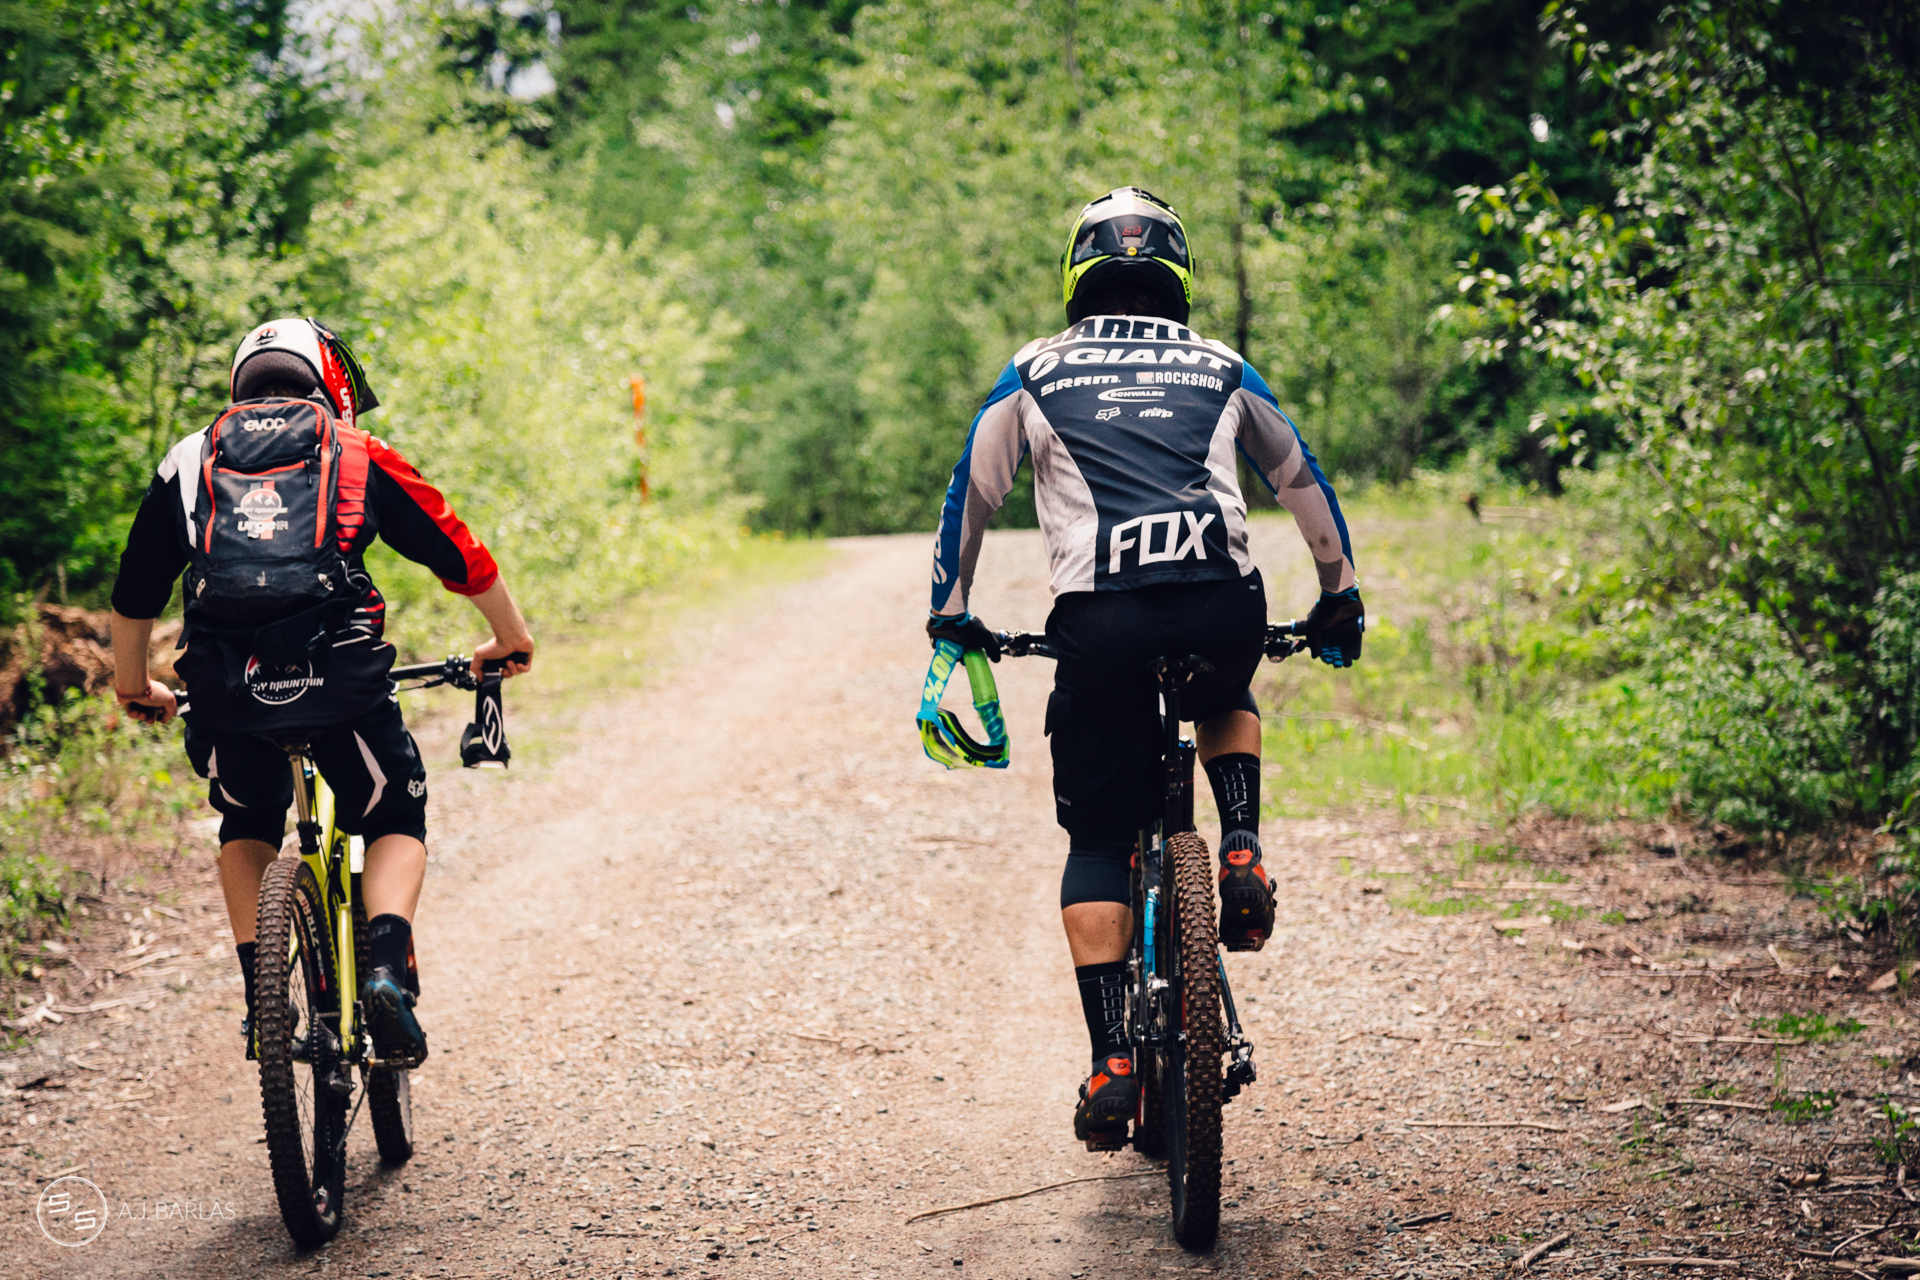 Jesse Melamed and Yoann Barelli liase to the next stage